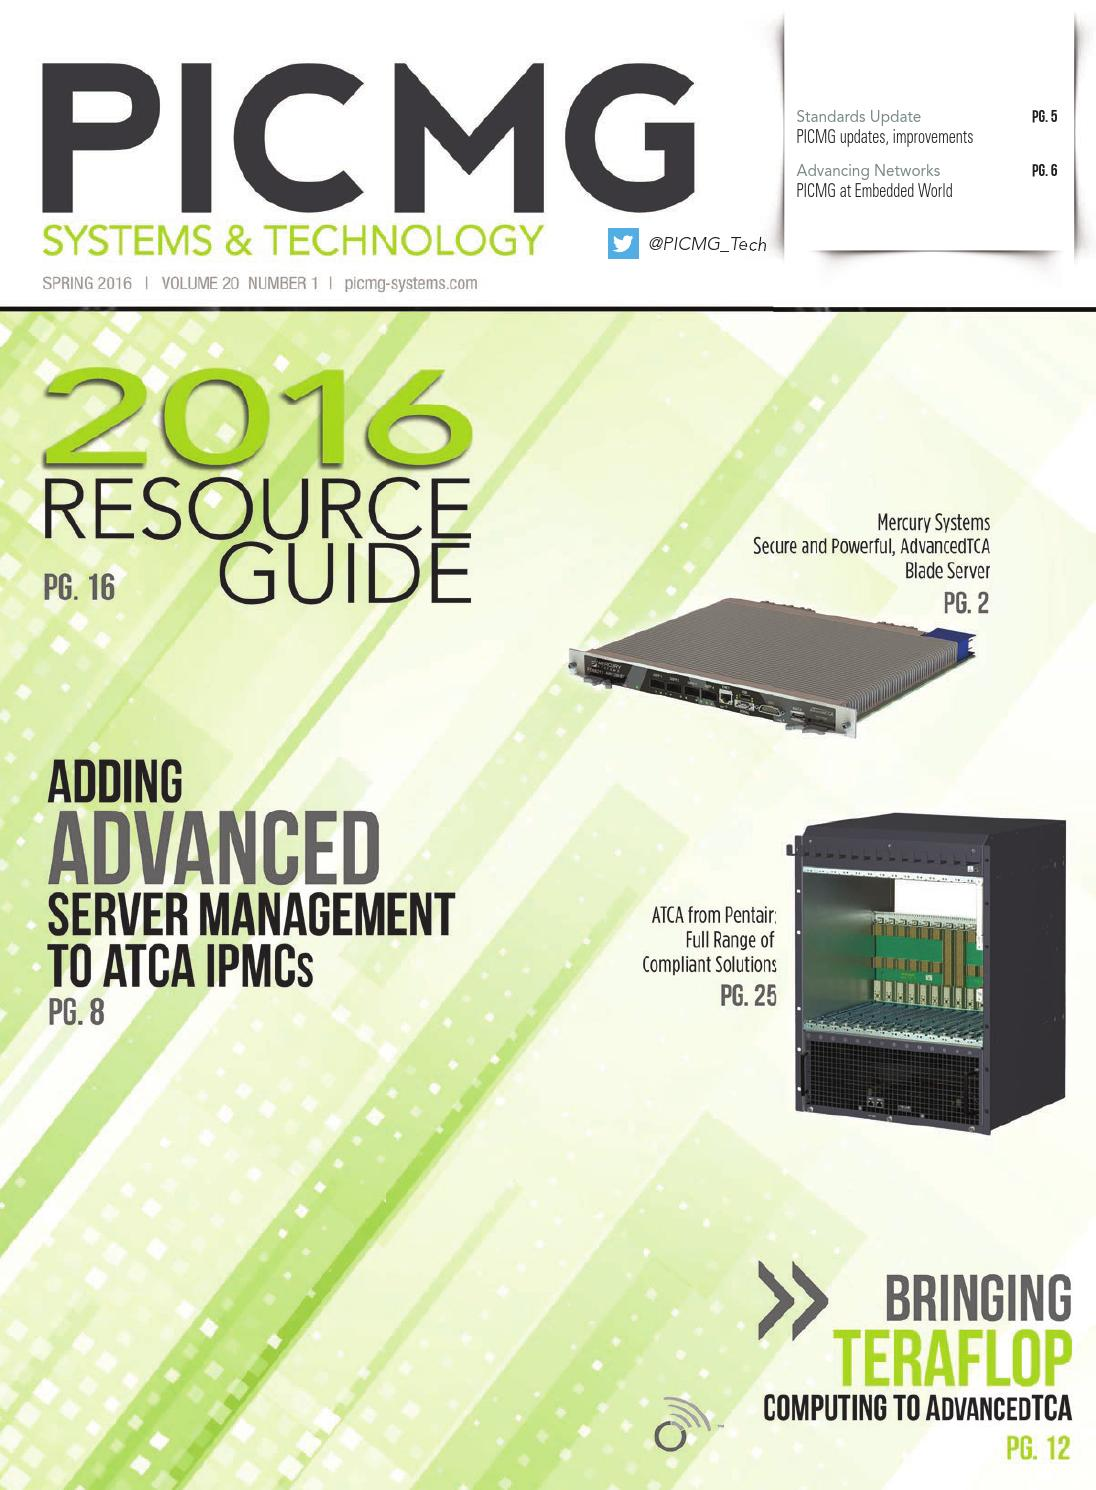 PICMG Systems & Technology Spring 2016 with Resource Guide